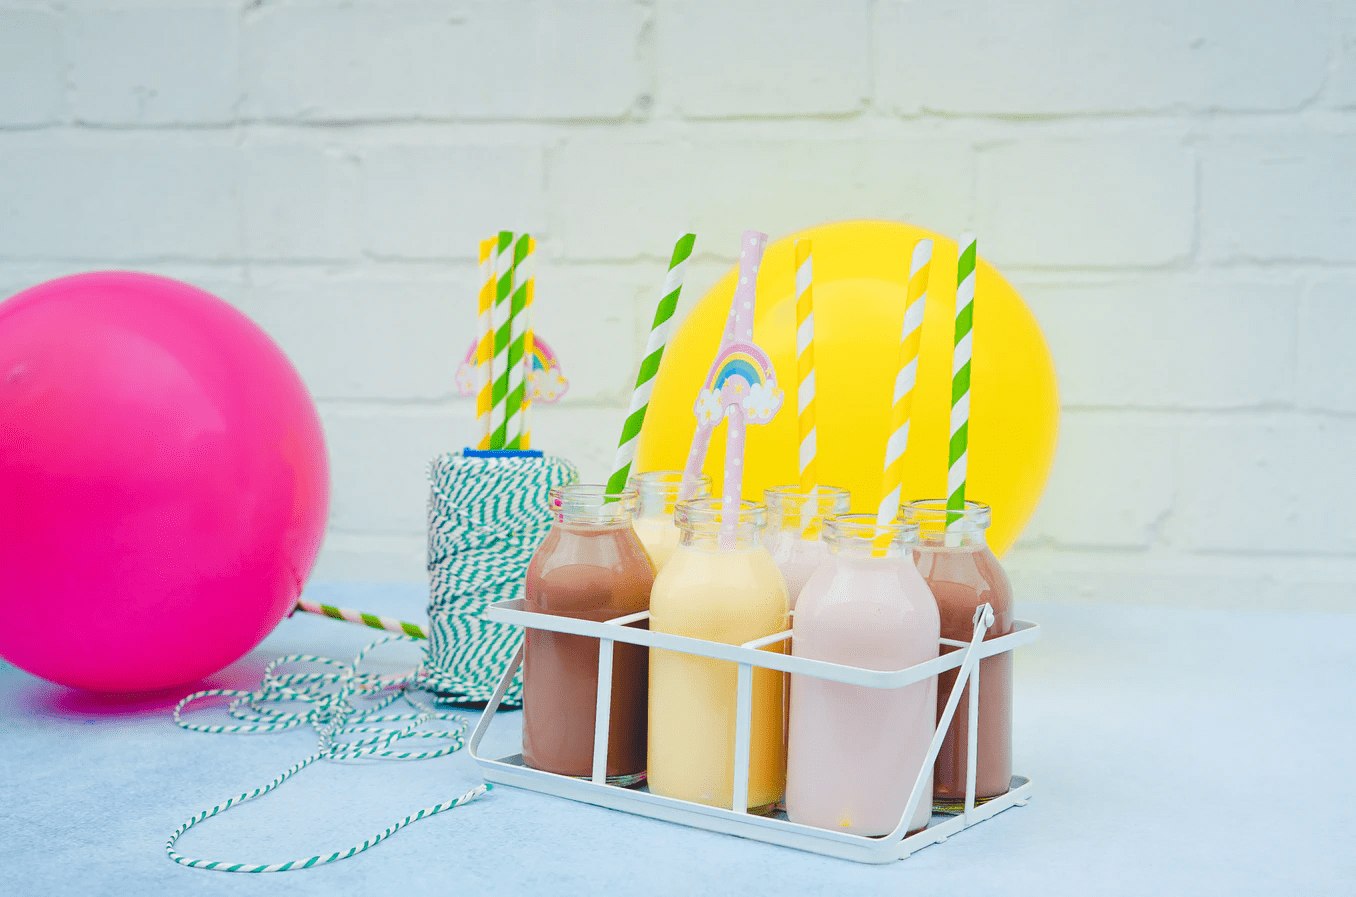 a pink balloon, a yellow balloon and 6 shakes